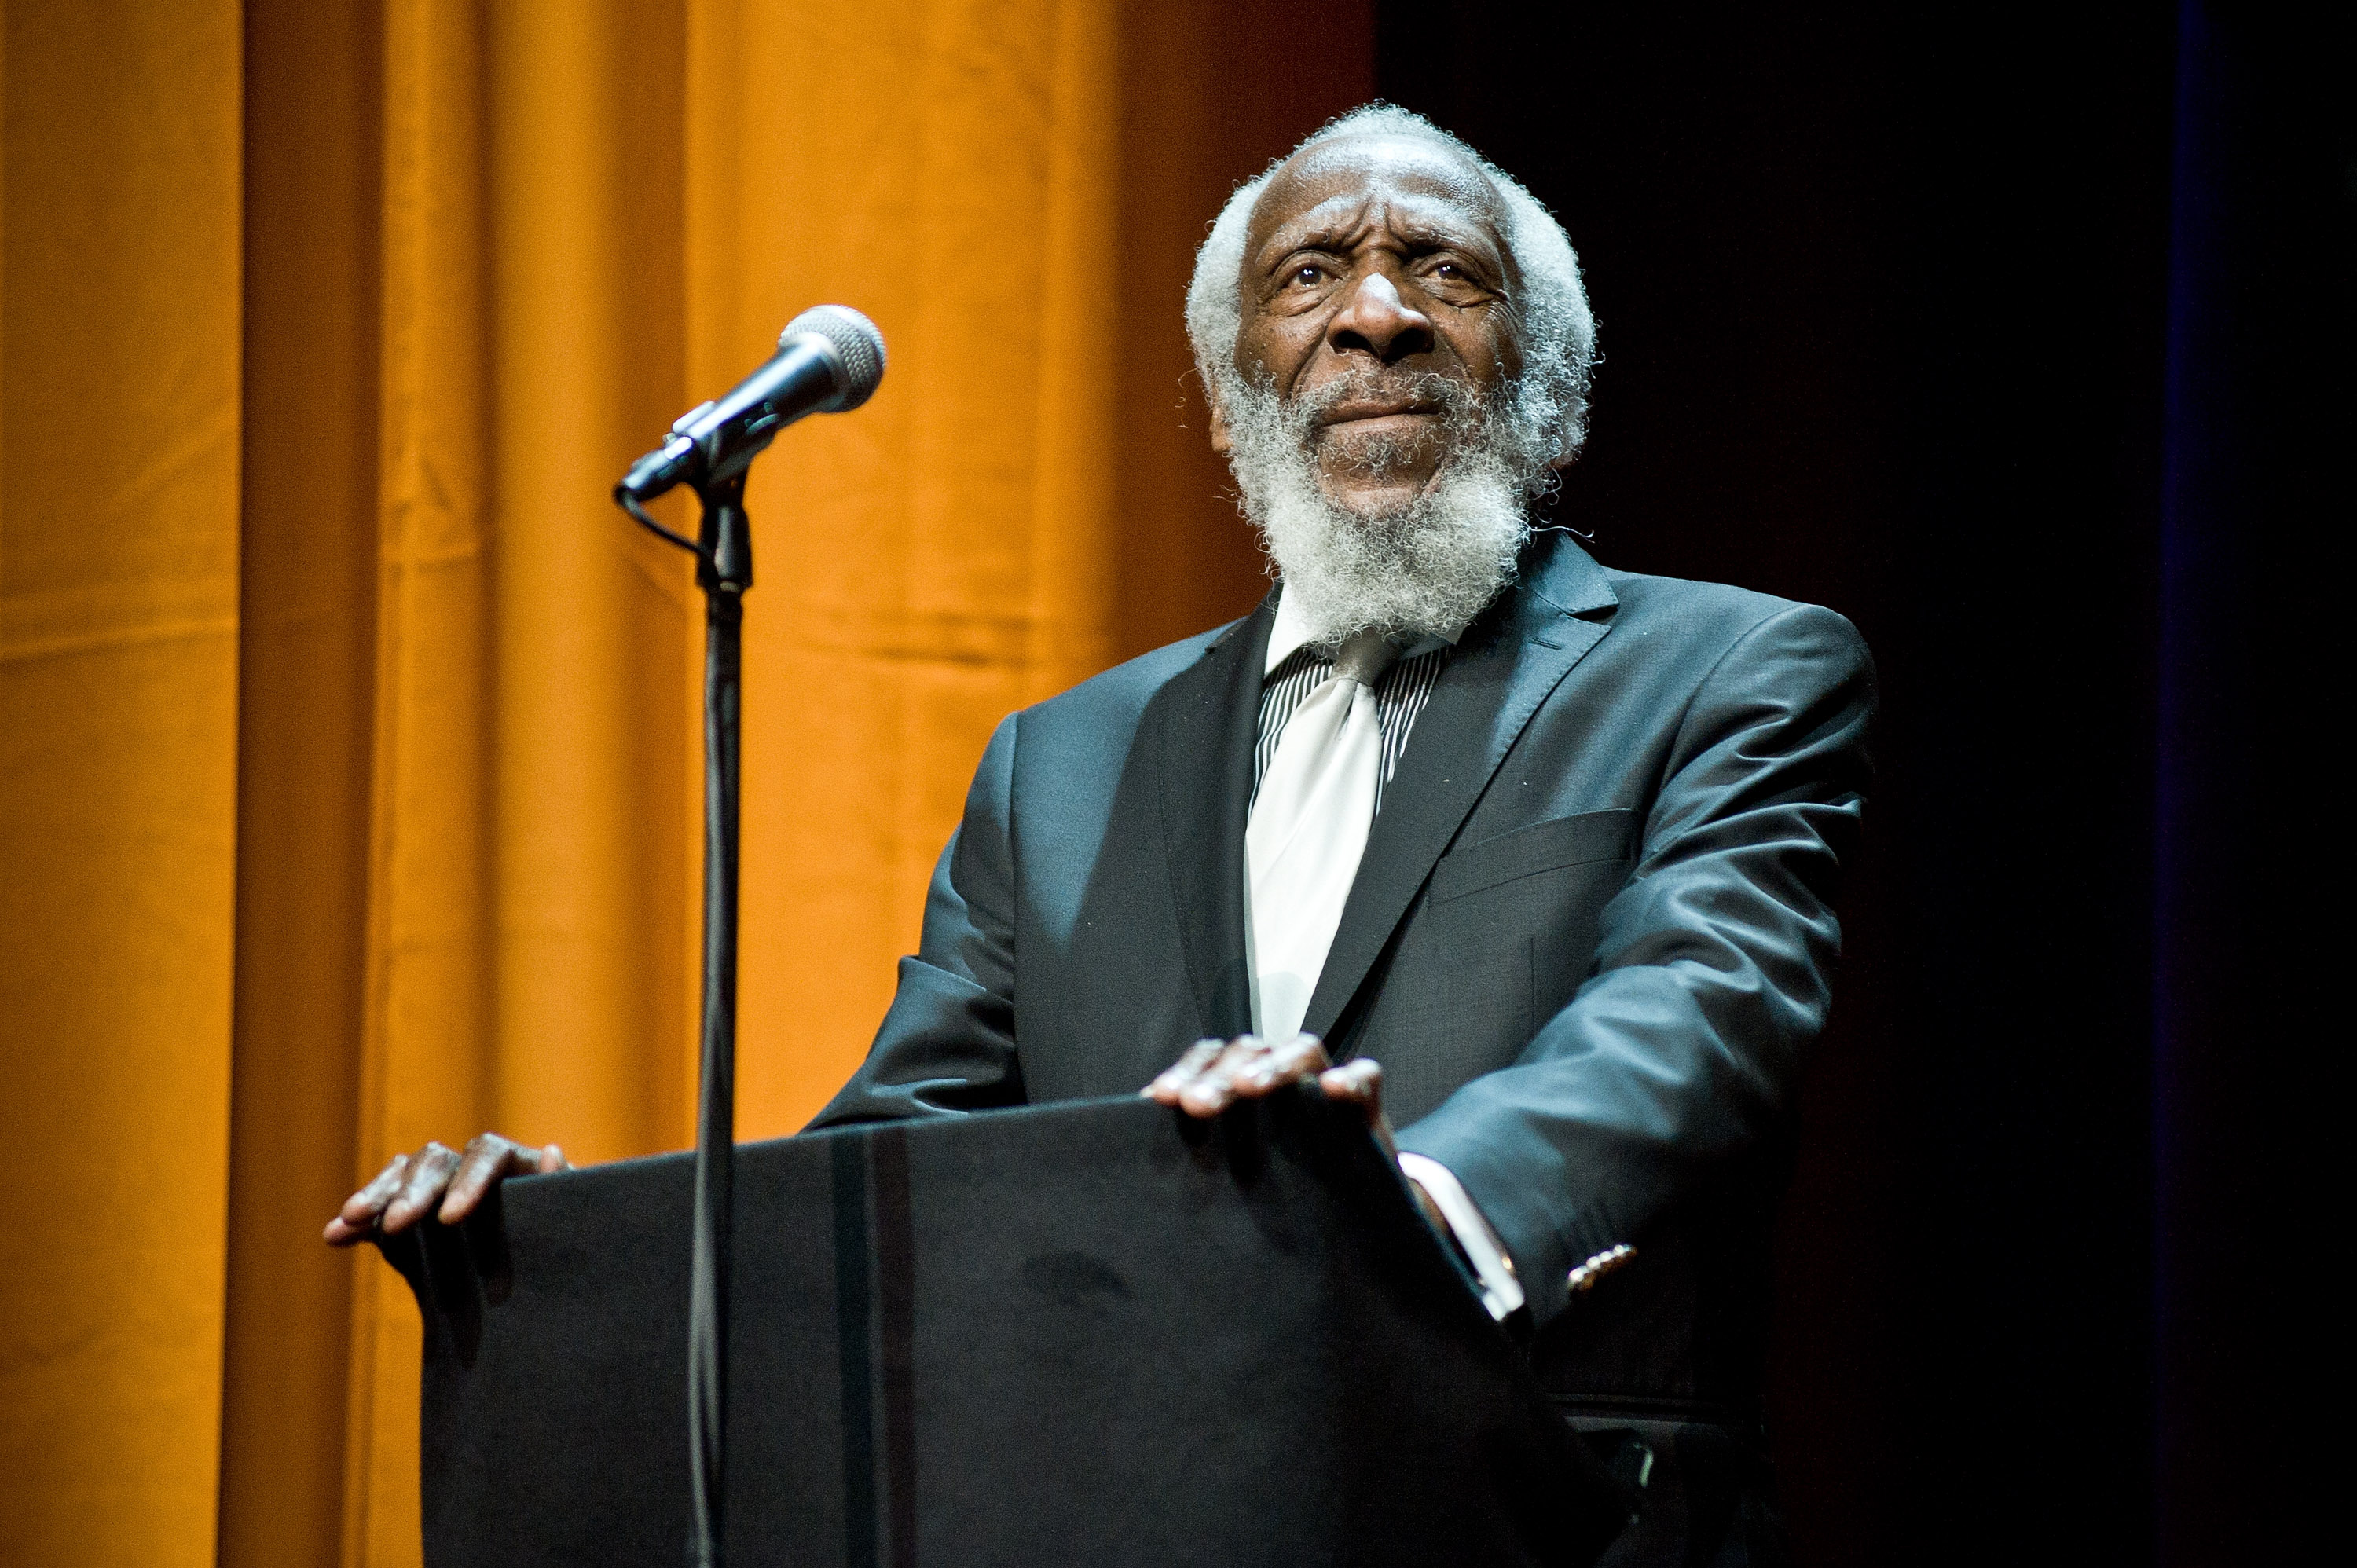 Humorist and activist Dick Gregory